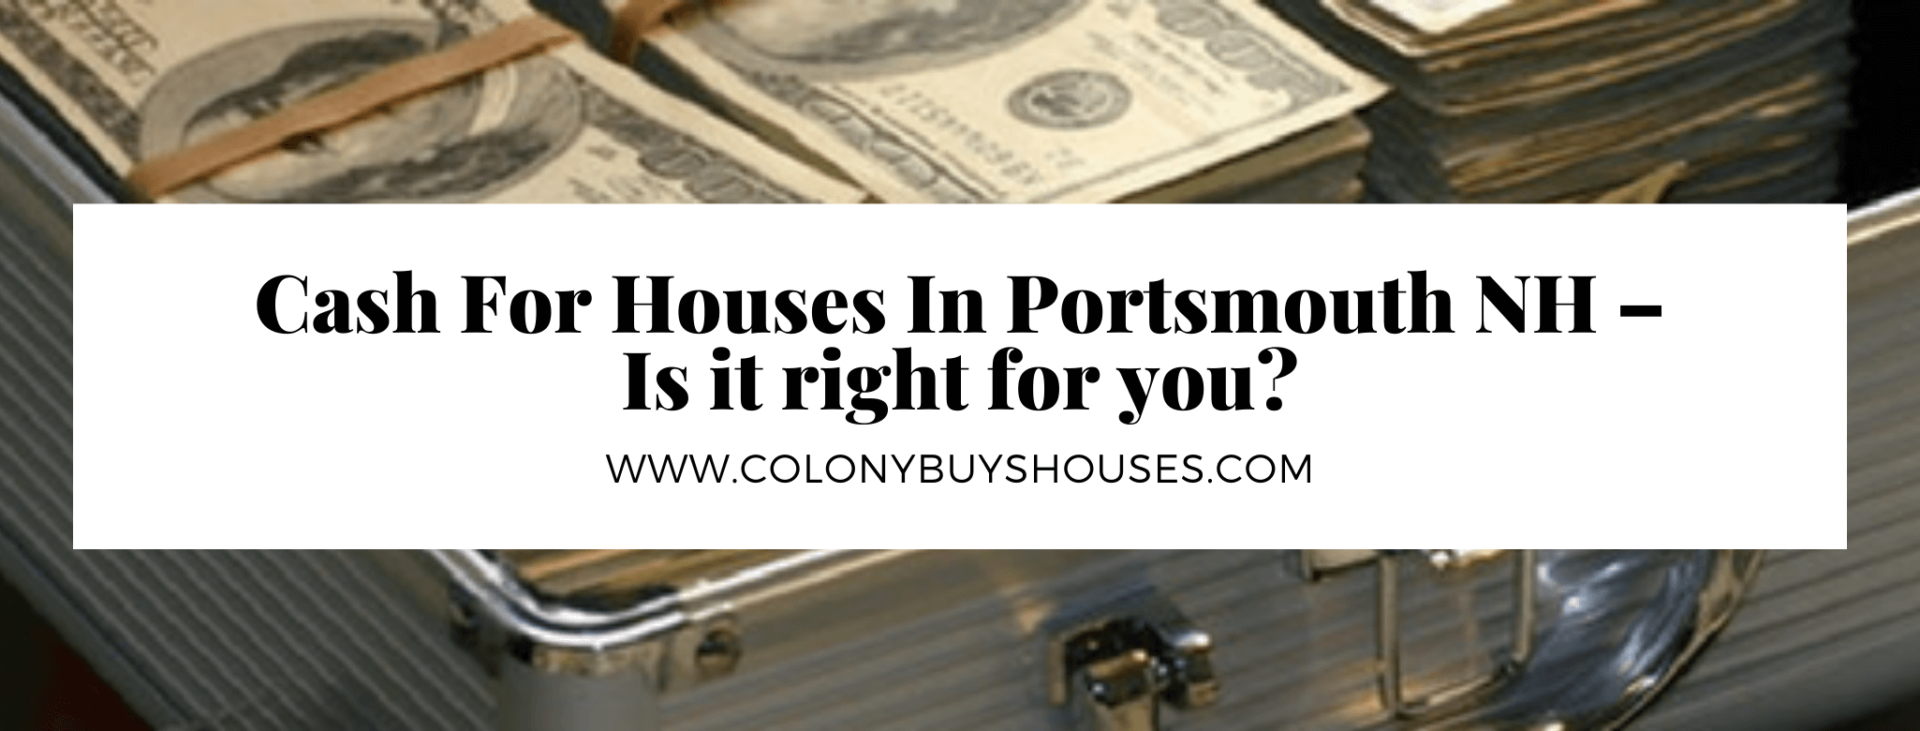 we buy properties in Portsmouth NH